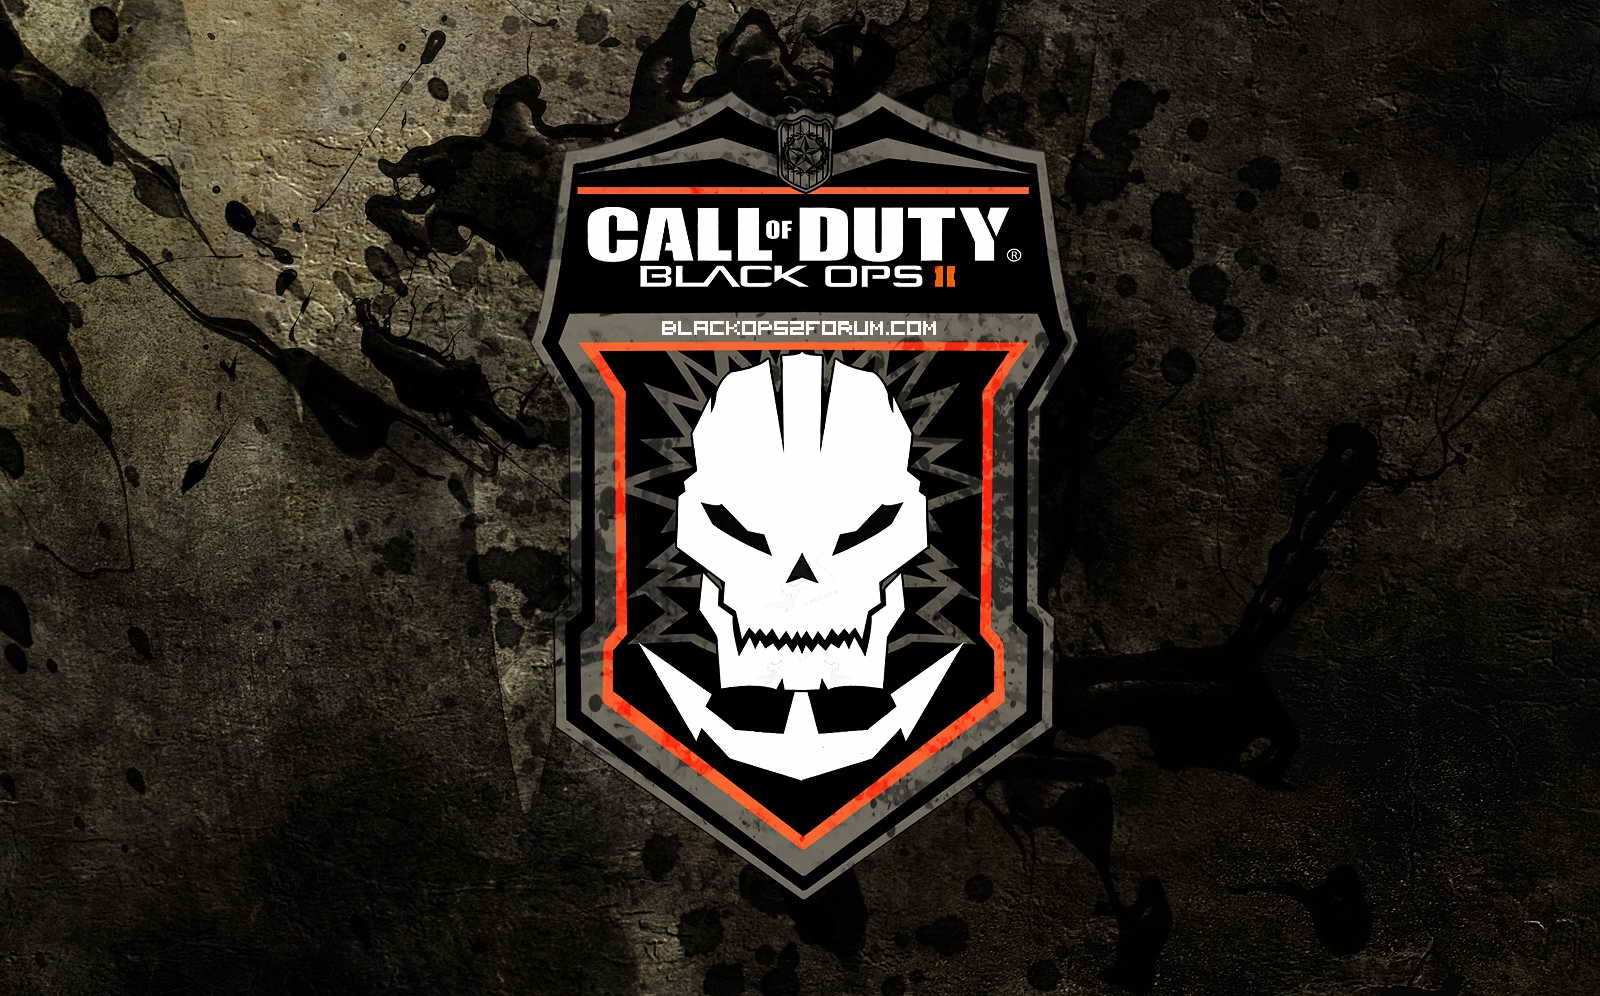 Call Of Duty Black Ops 2 Call Of Duty Black Ops 2 Hd Wallpapers